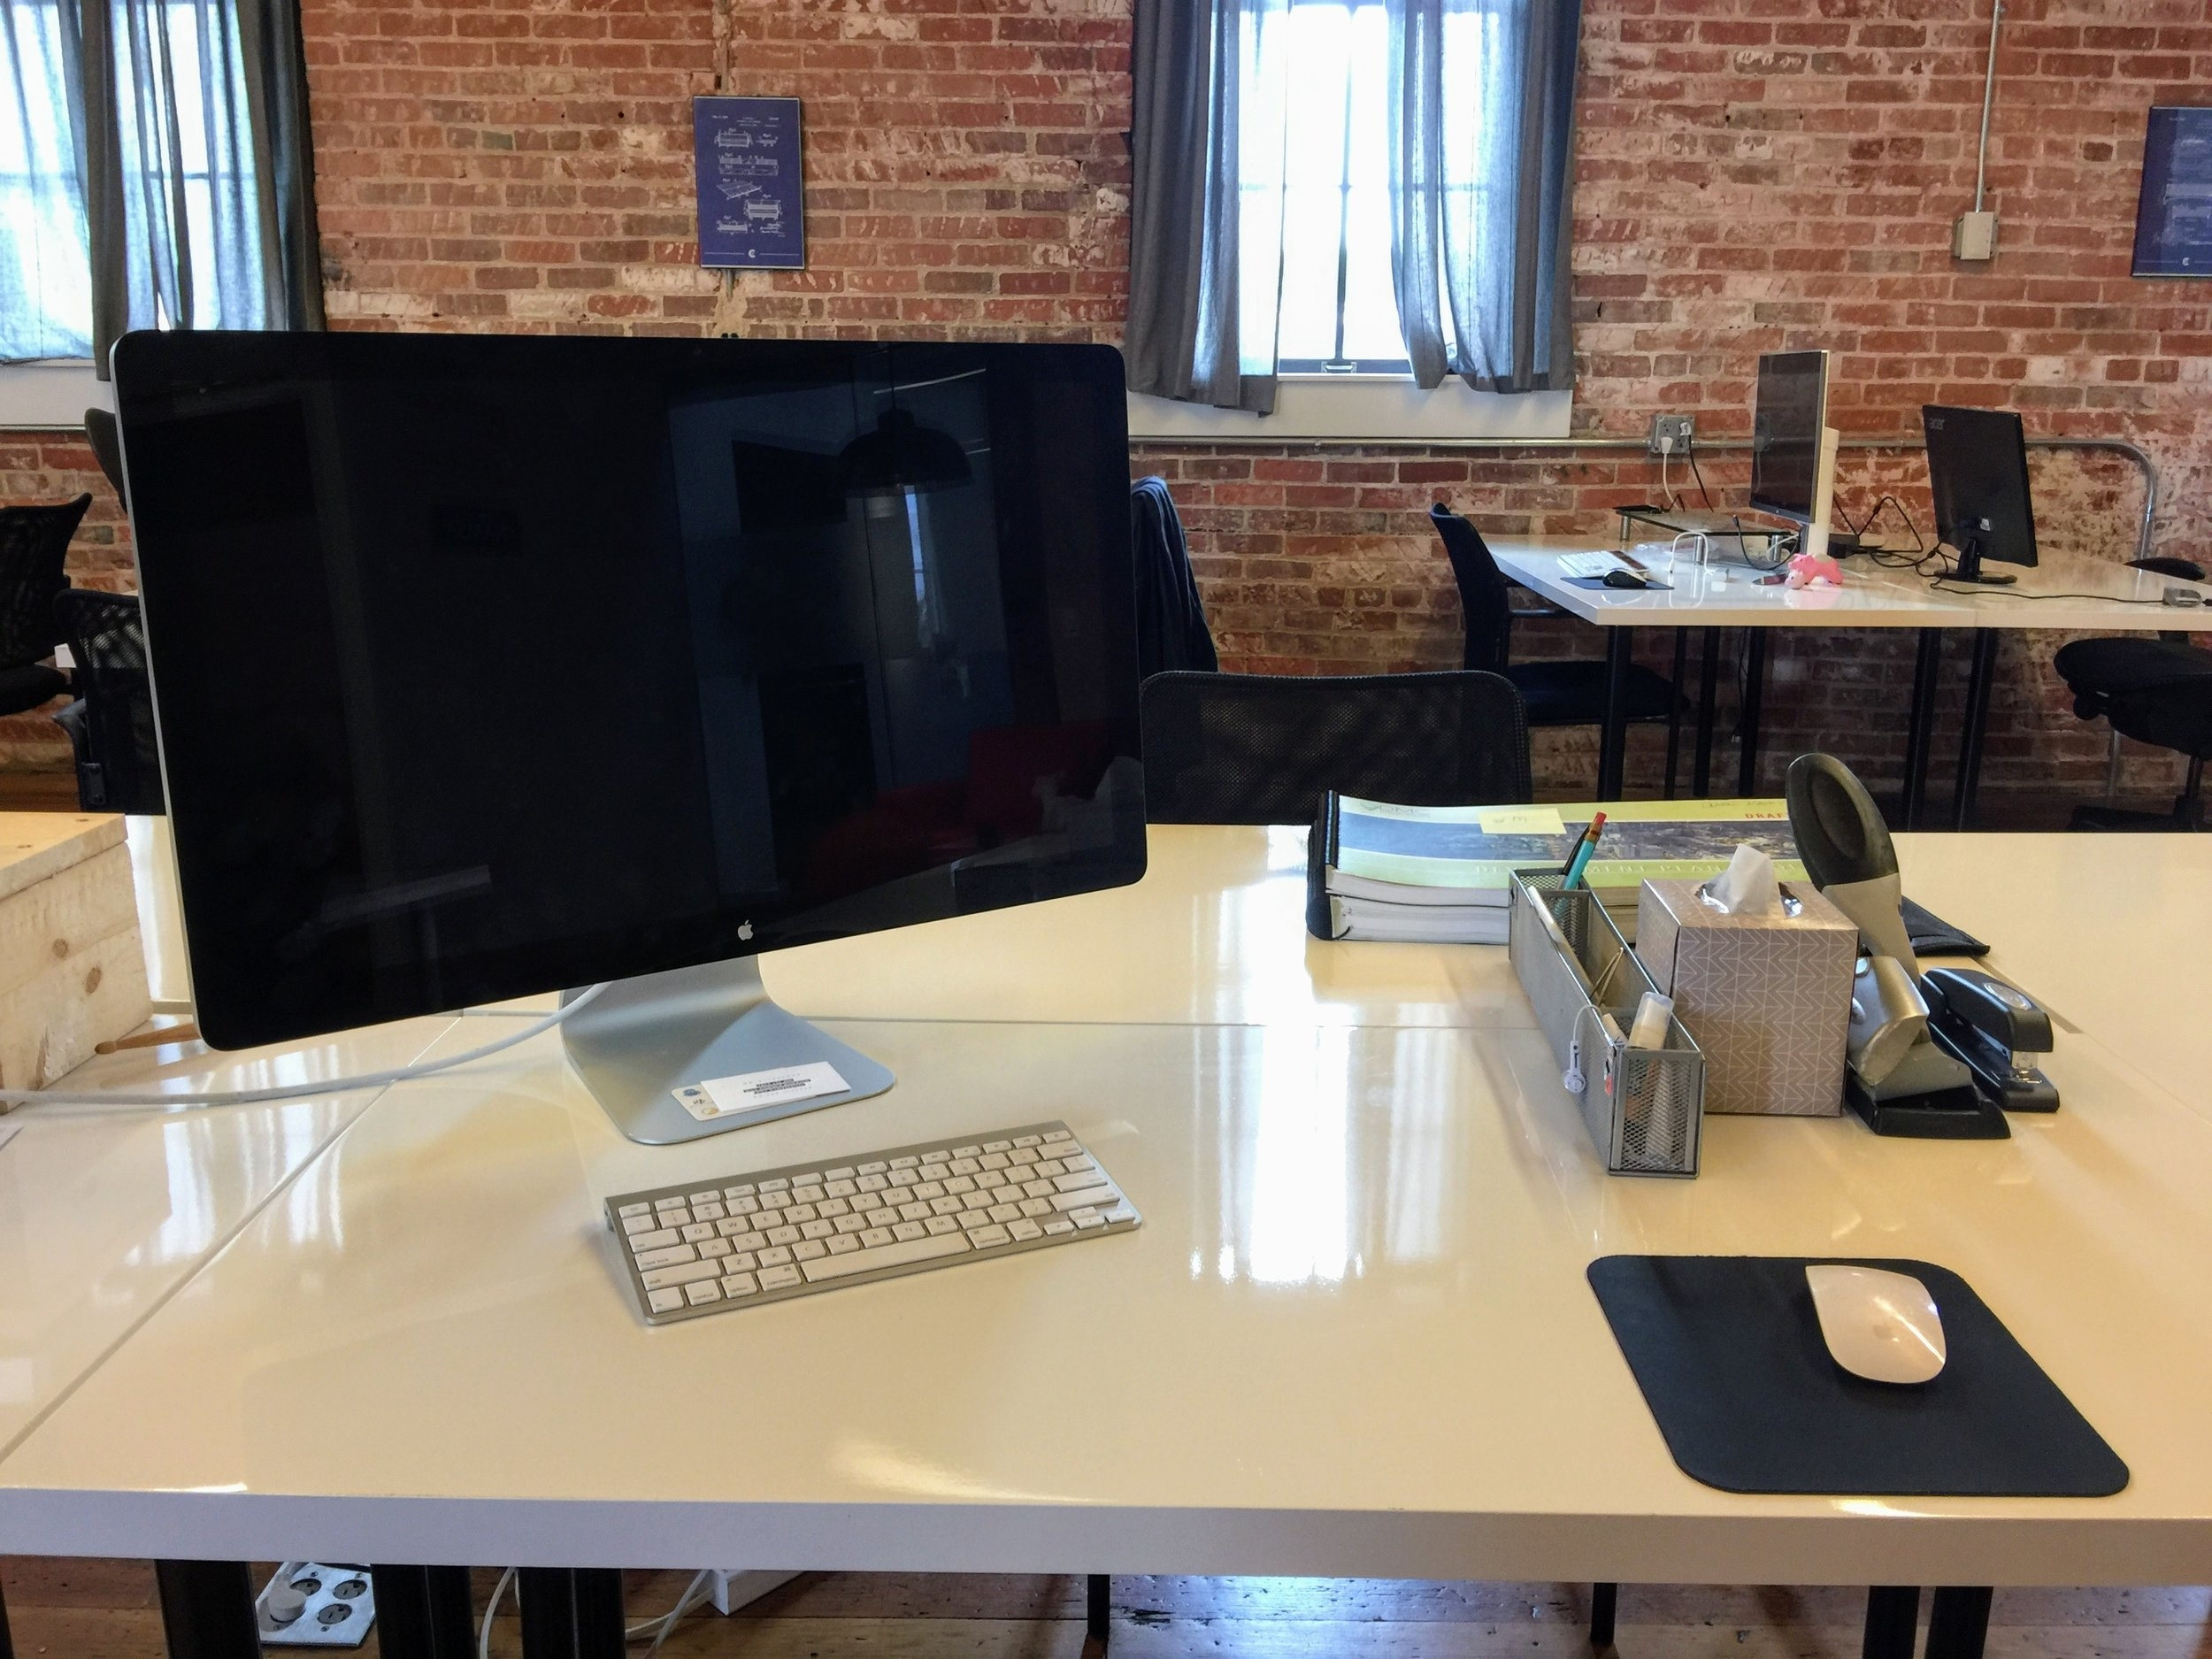 Dedicated Desk - $350/month• Your own desk at Collider with 24/7 access• Access to Quiet Rooms and Conference Rooms• Access to private Slack channel for members